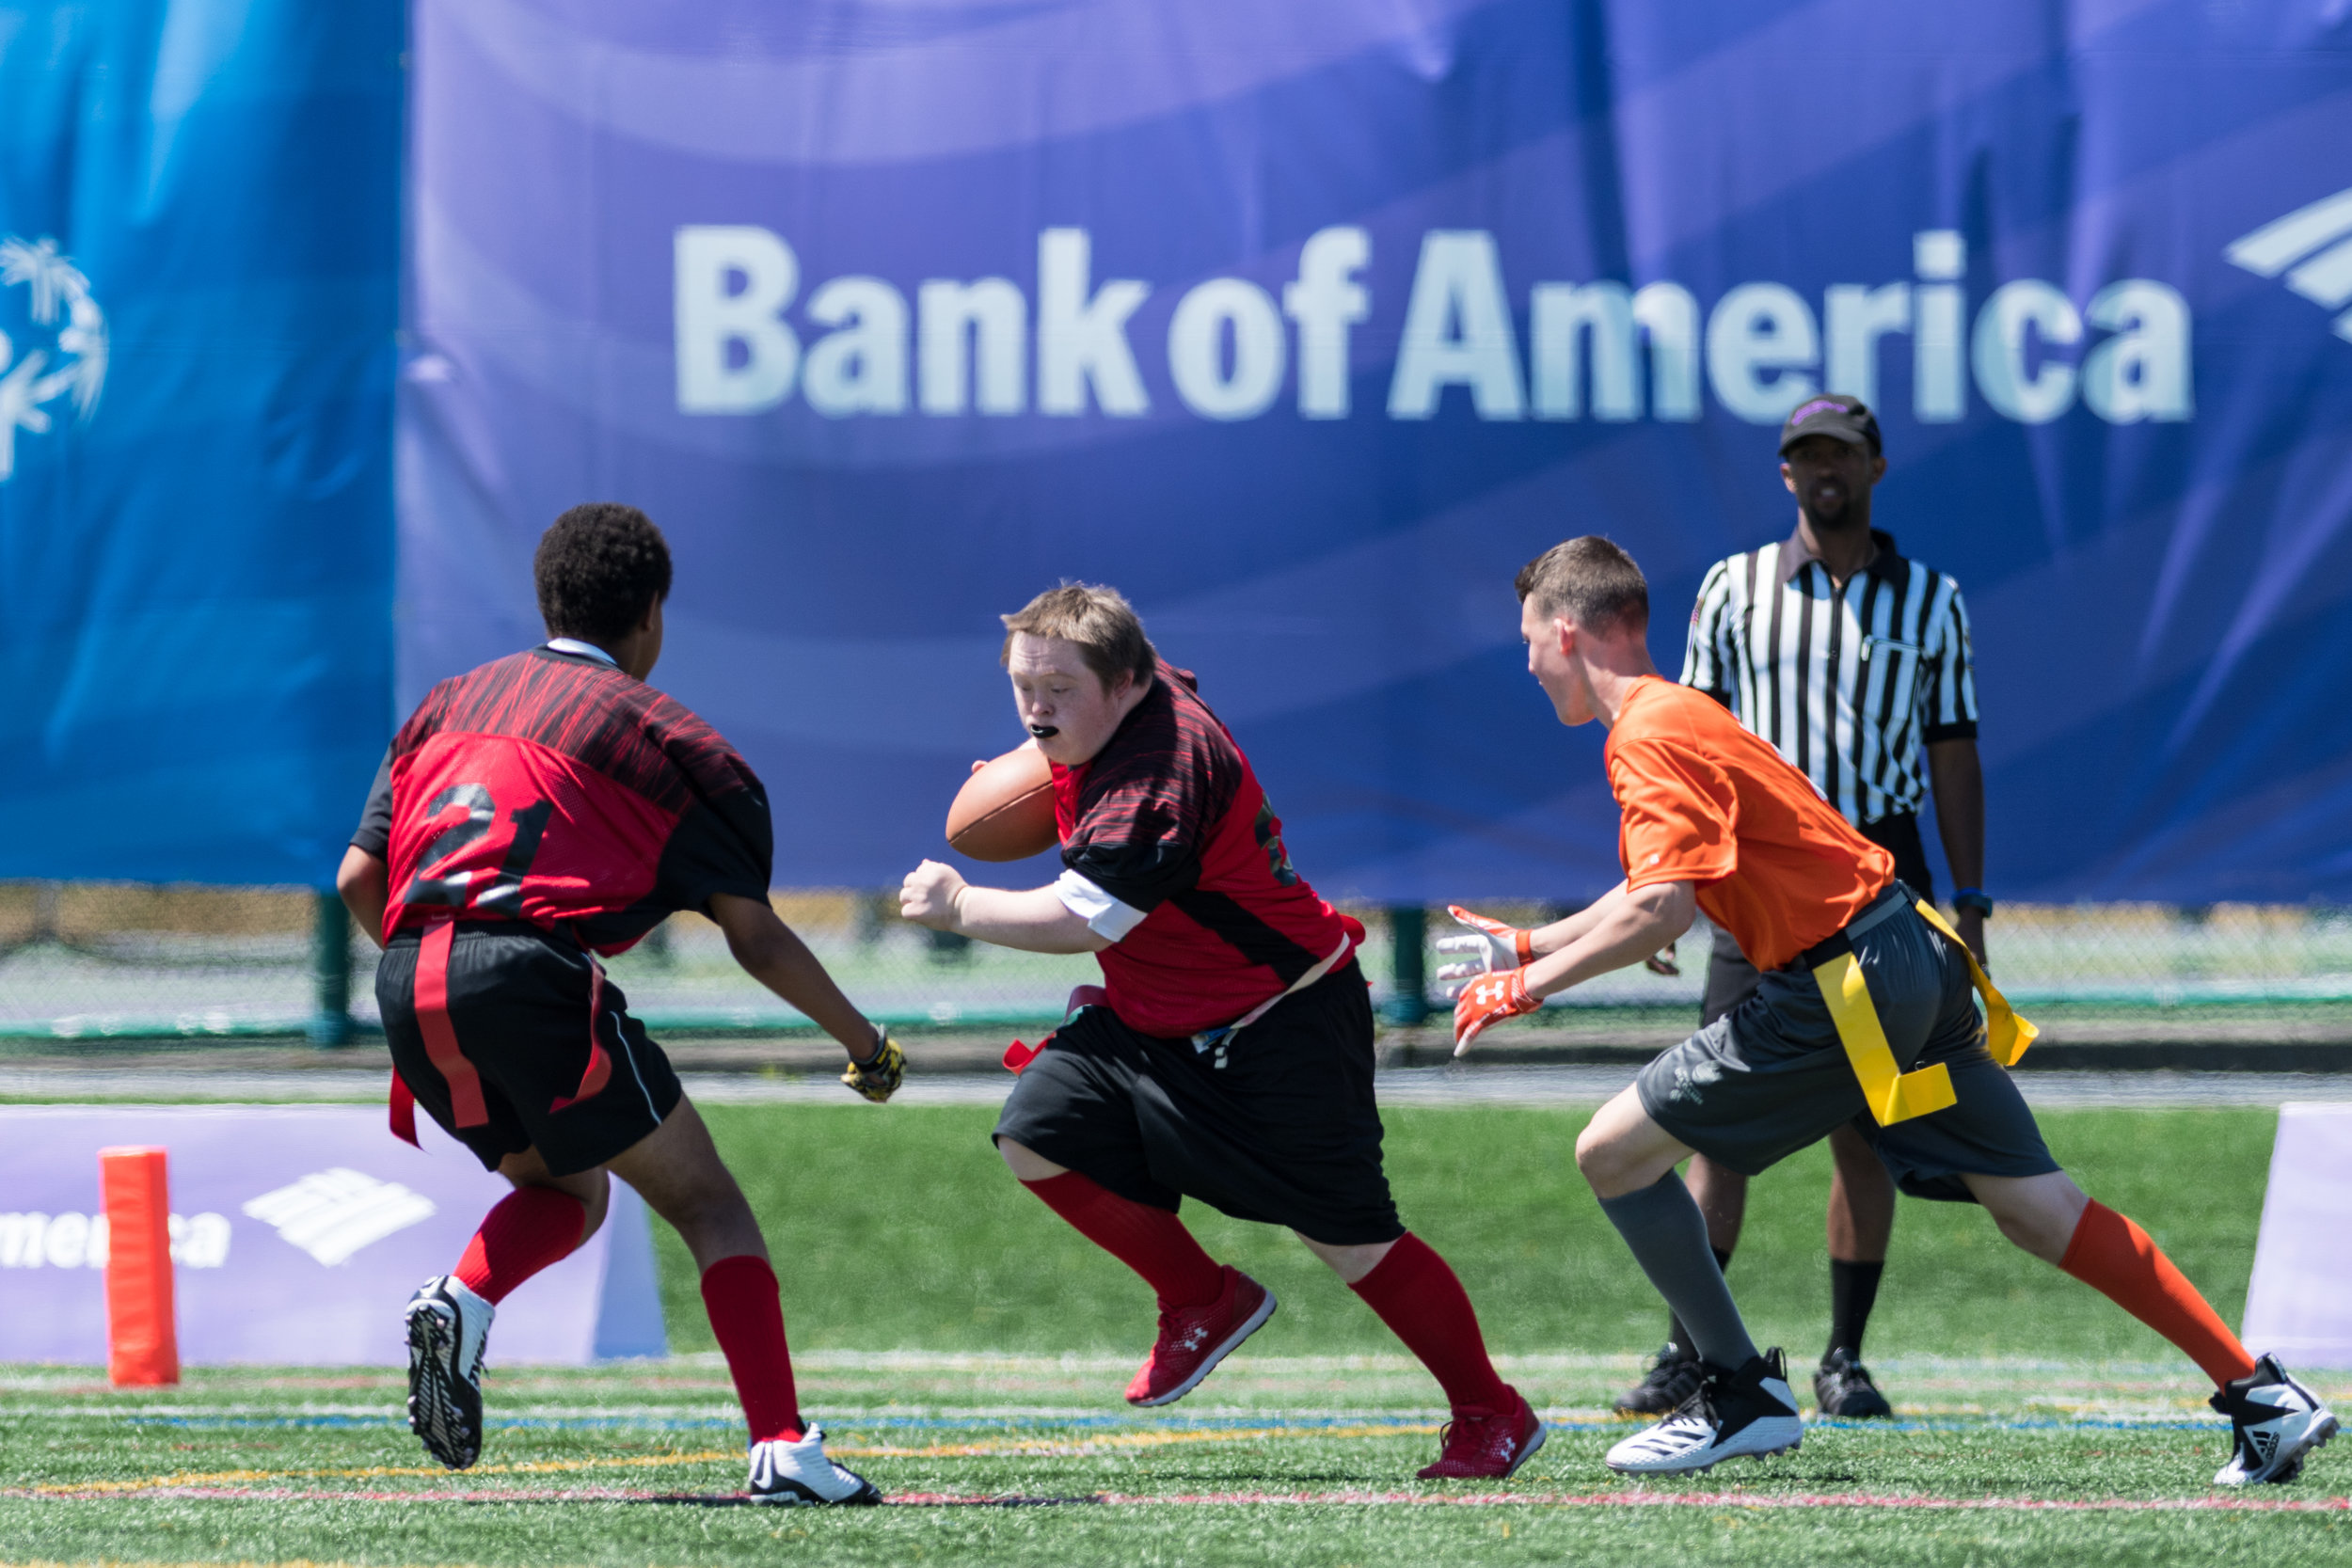 July 5, 2018 - Seattle, WA - USA Games Flag Football